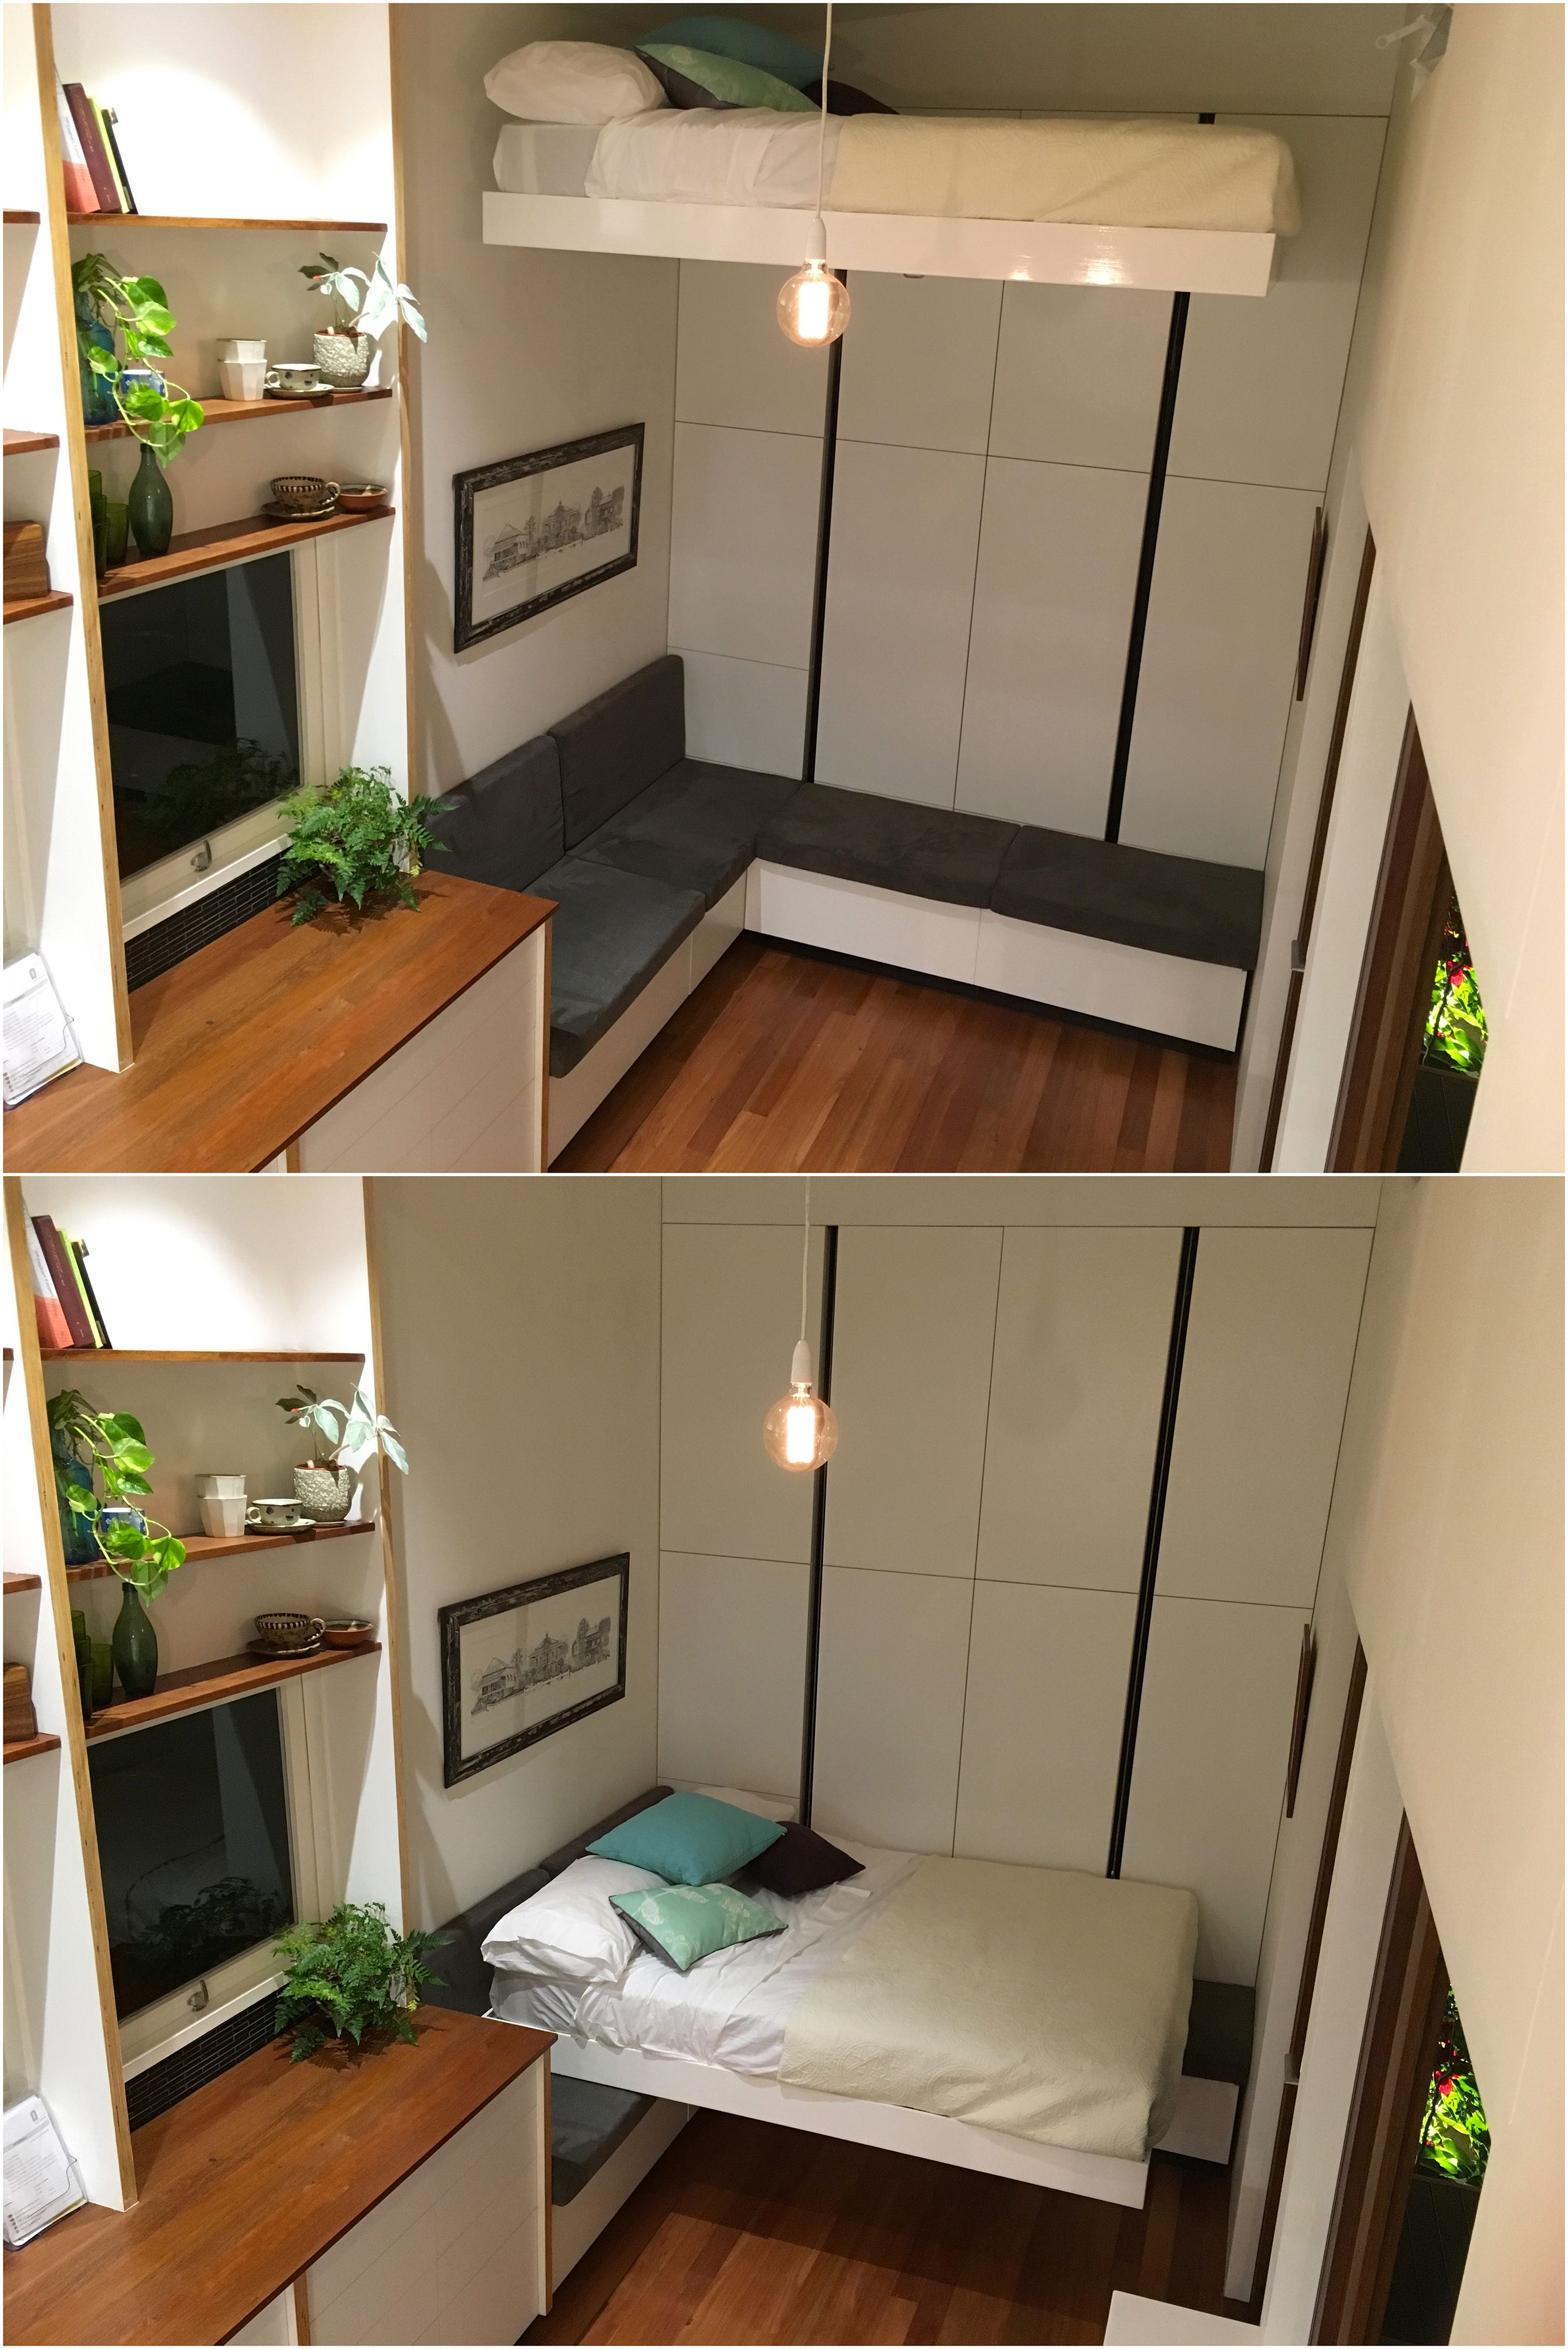 Retractable bed designed and built by Nathan Nostaw for